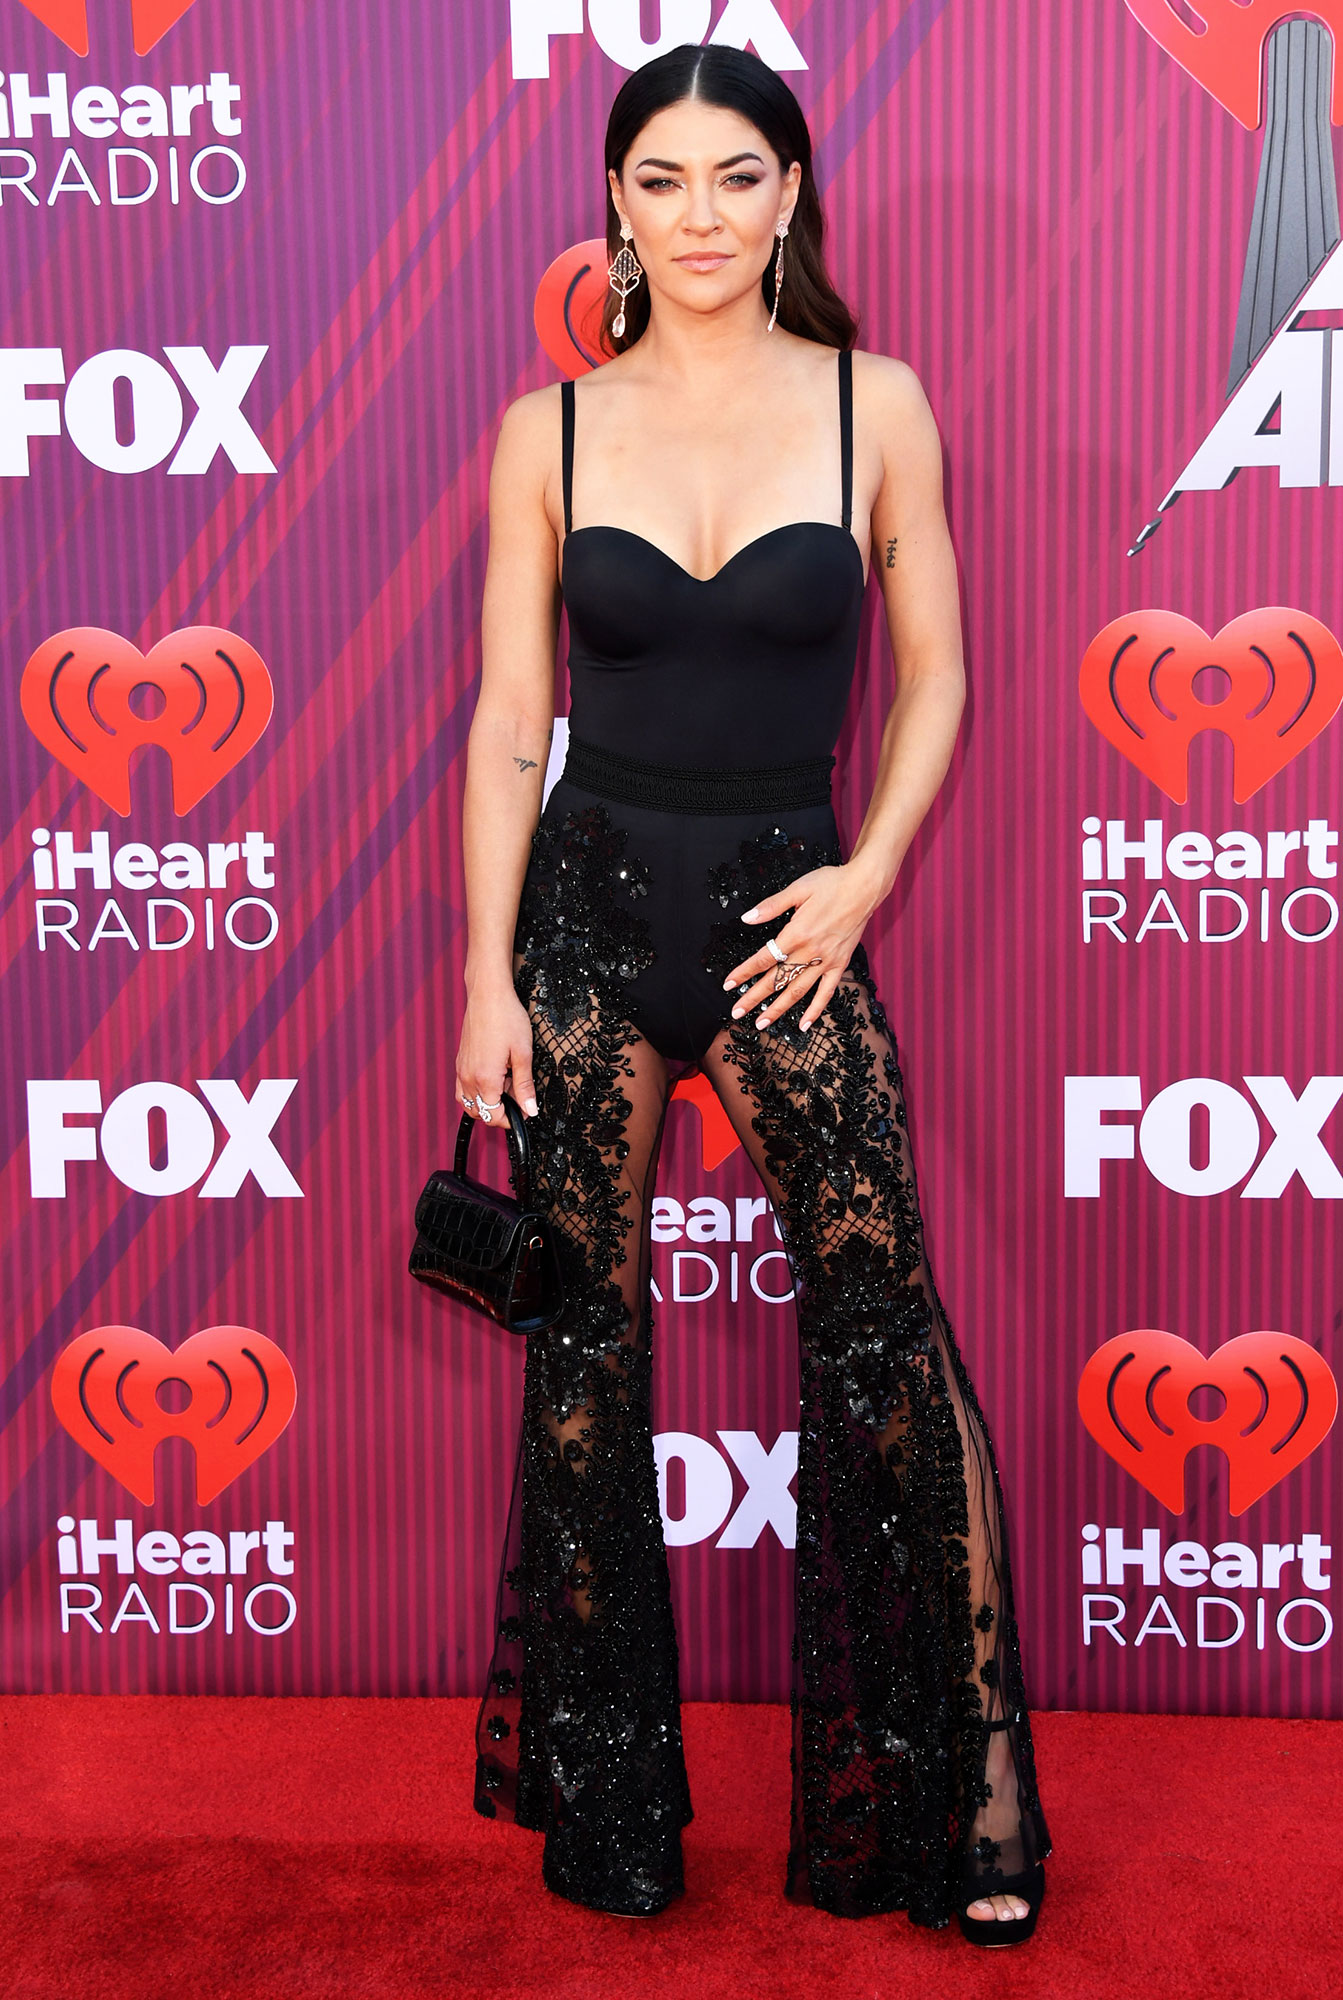 Jessica Szohr See What the Stars Wore to the iHeart Radio Music Awards 2019 - Wearing a black nearly naked lace jumpsuit and Hearts On Fire jewelry.